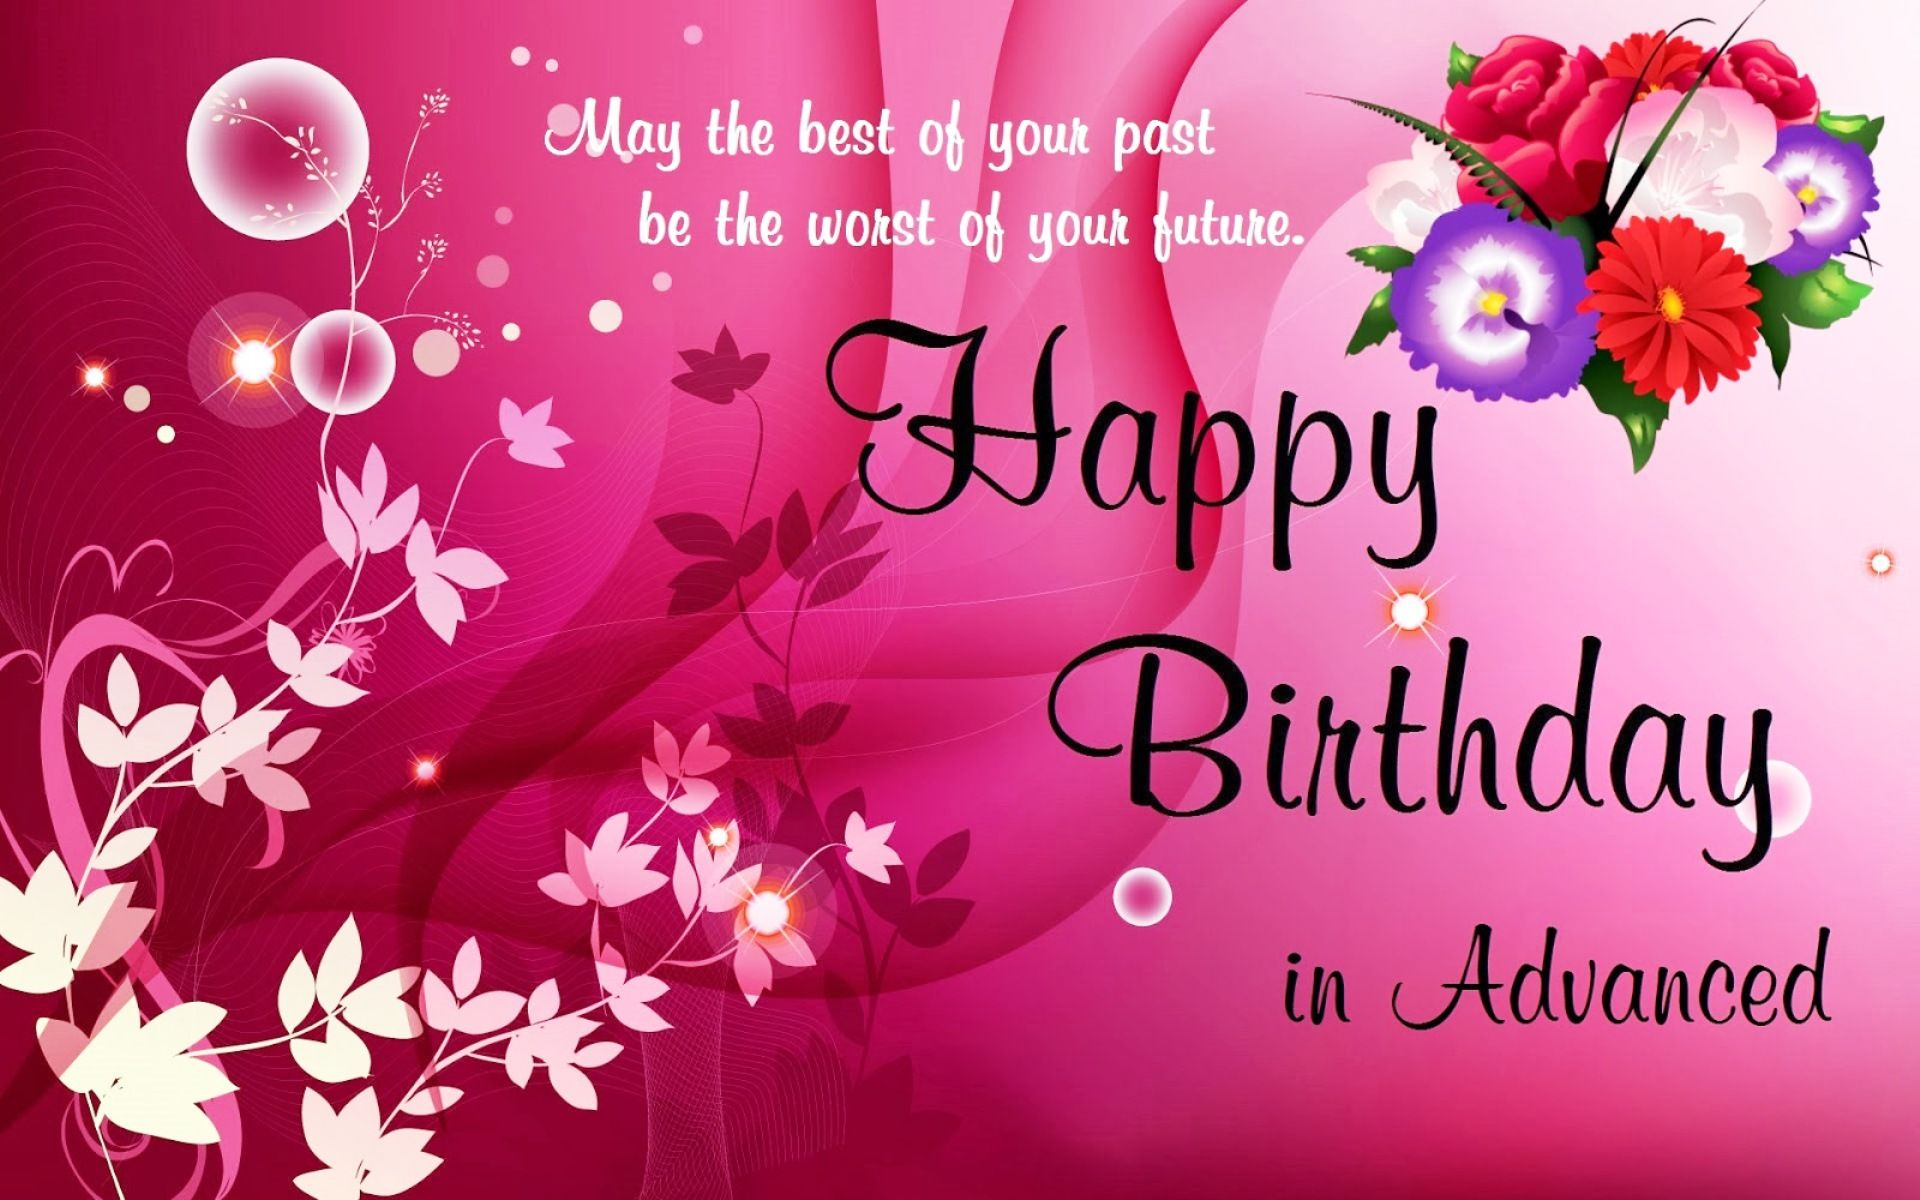 Happy Birthday Images free download with wishes – Free Textable Birthday Cards